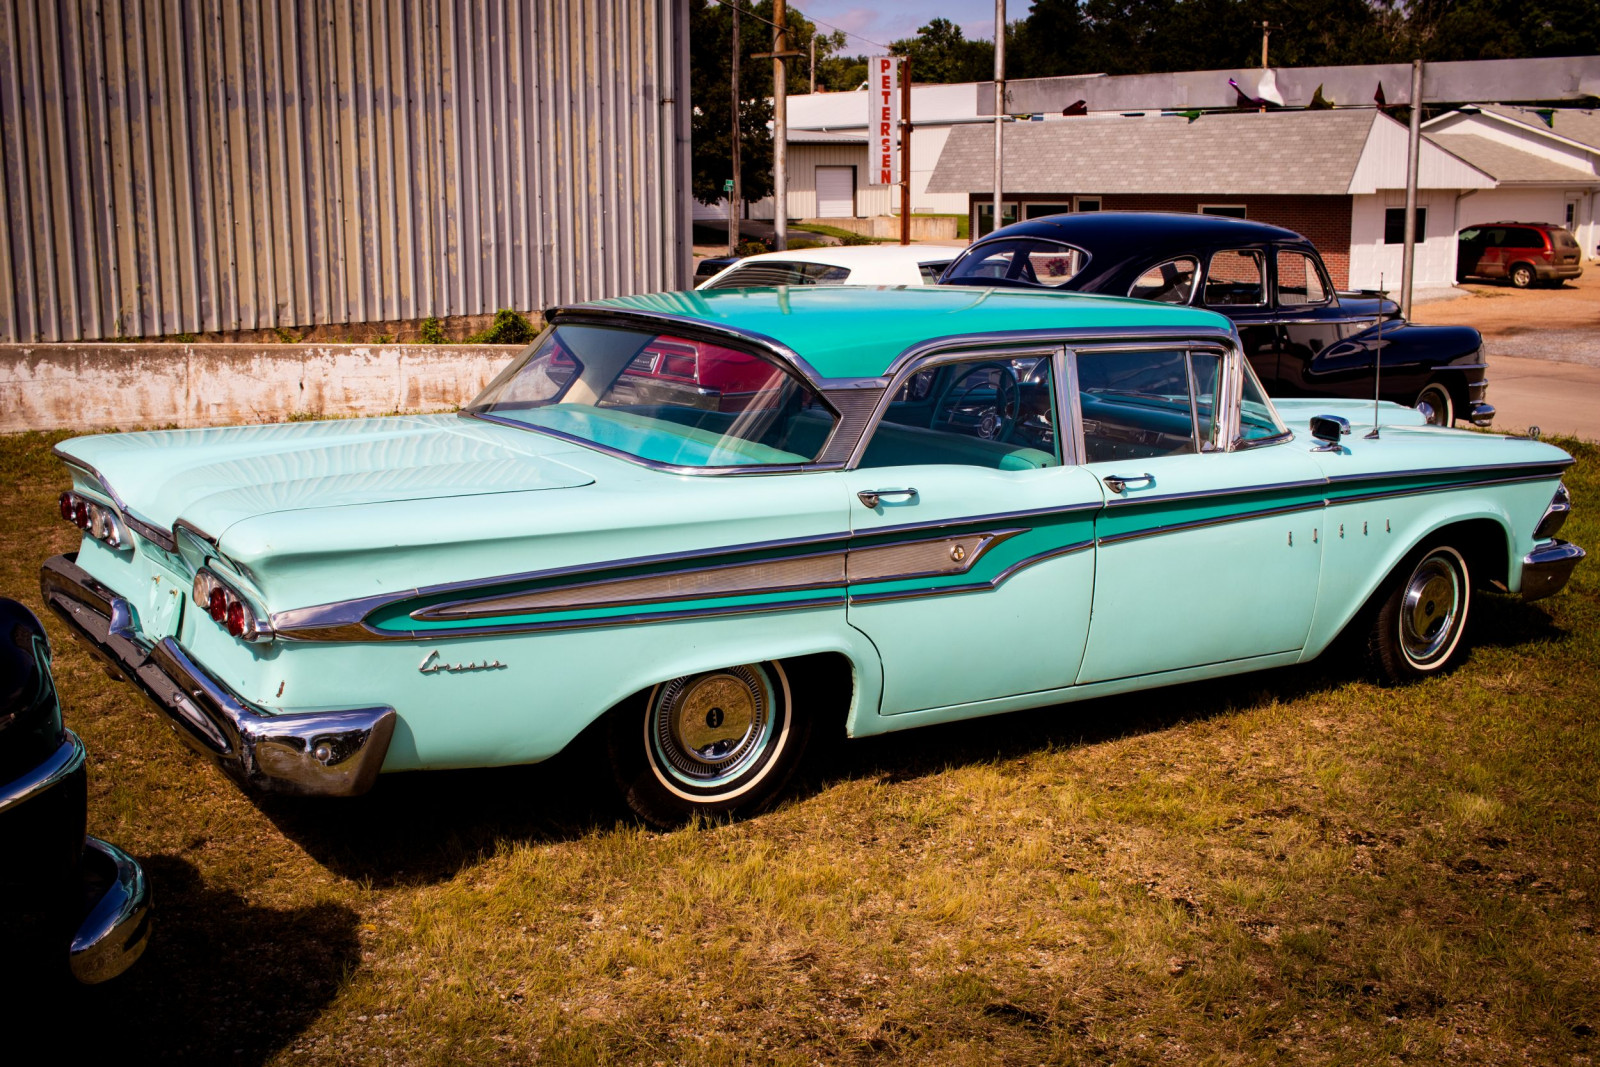 1959 Edsel Corsair 4dr Sedan - Image 5